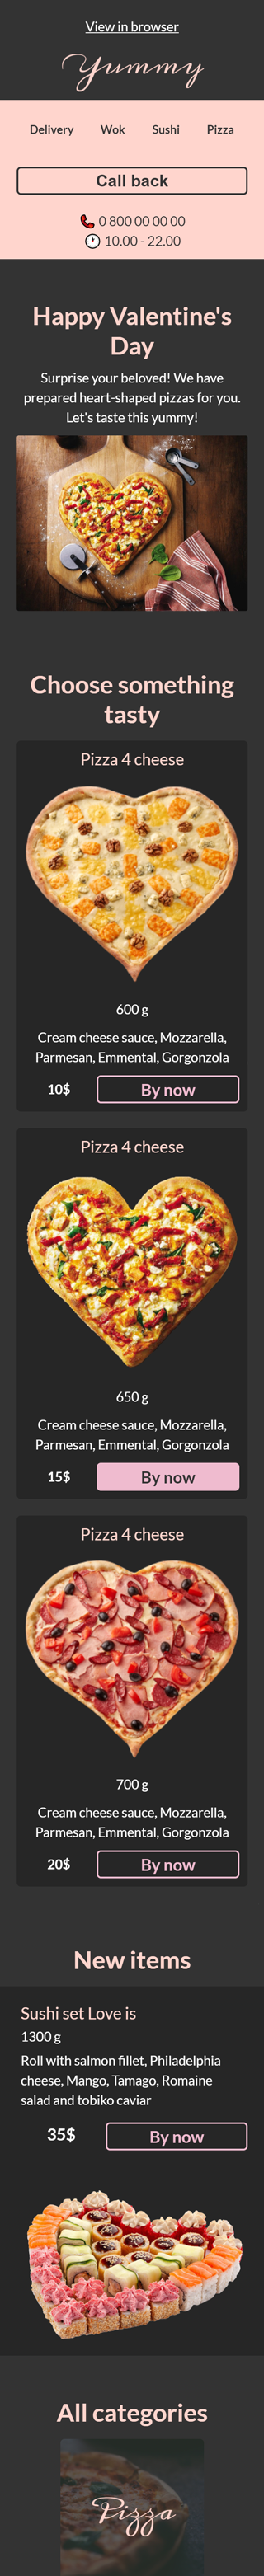 Valentine's Day Email Template «Pizza heart» for Food industry mobile view